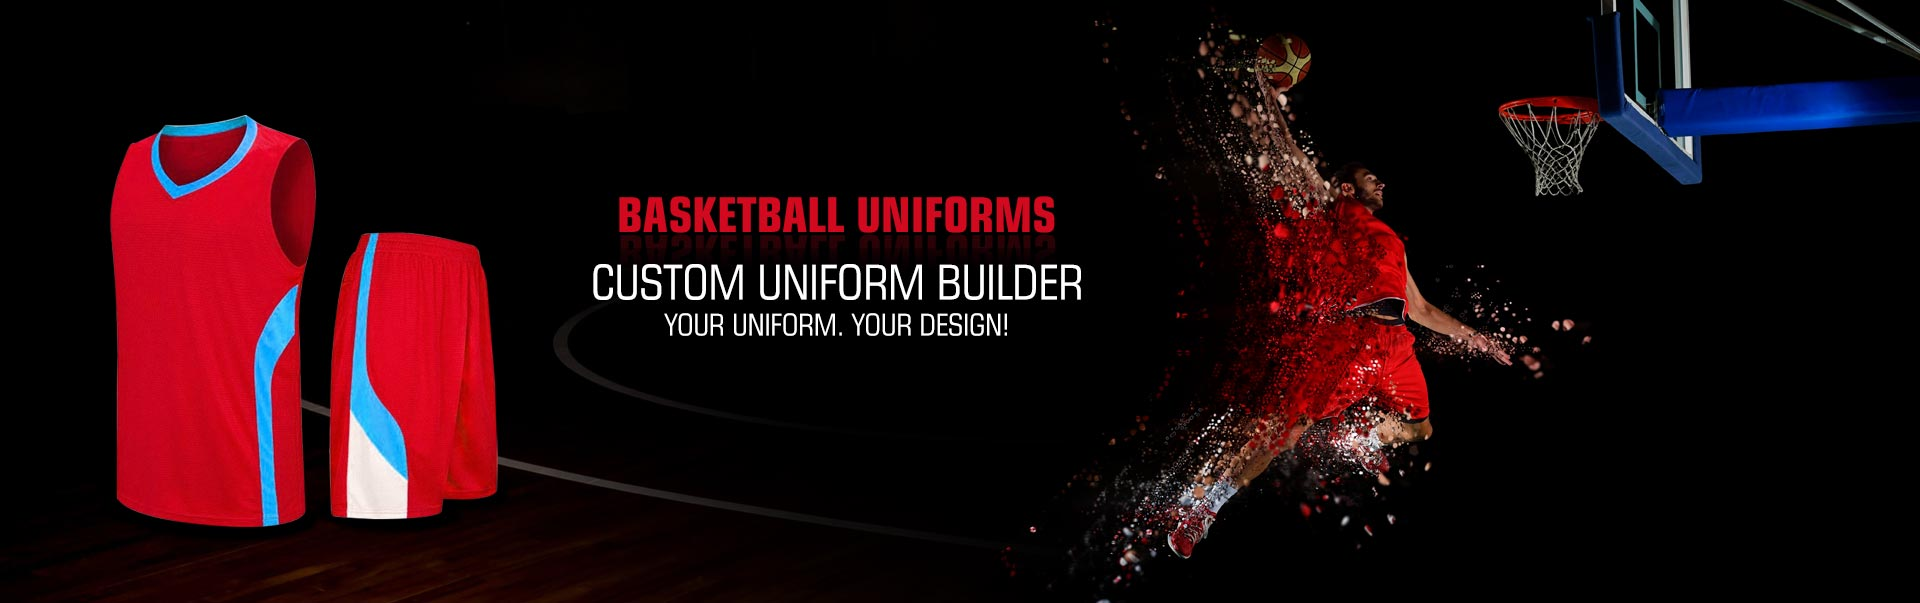 Basketball Uniforms Wholesaler, Suppliers in Milton